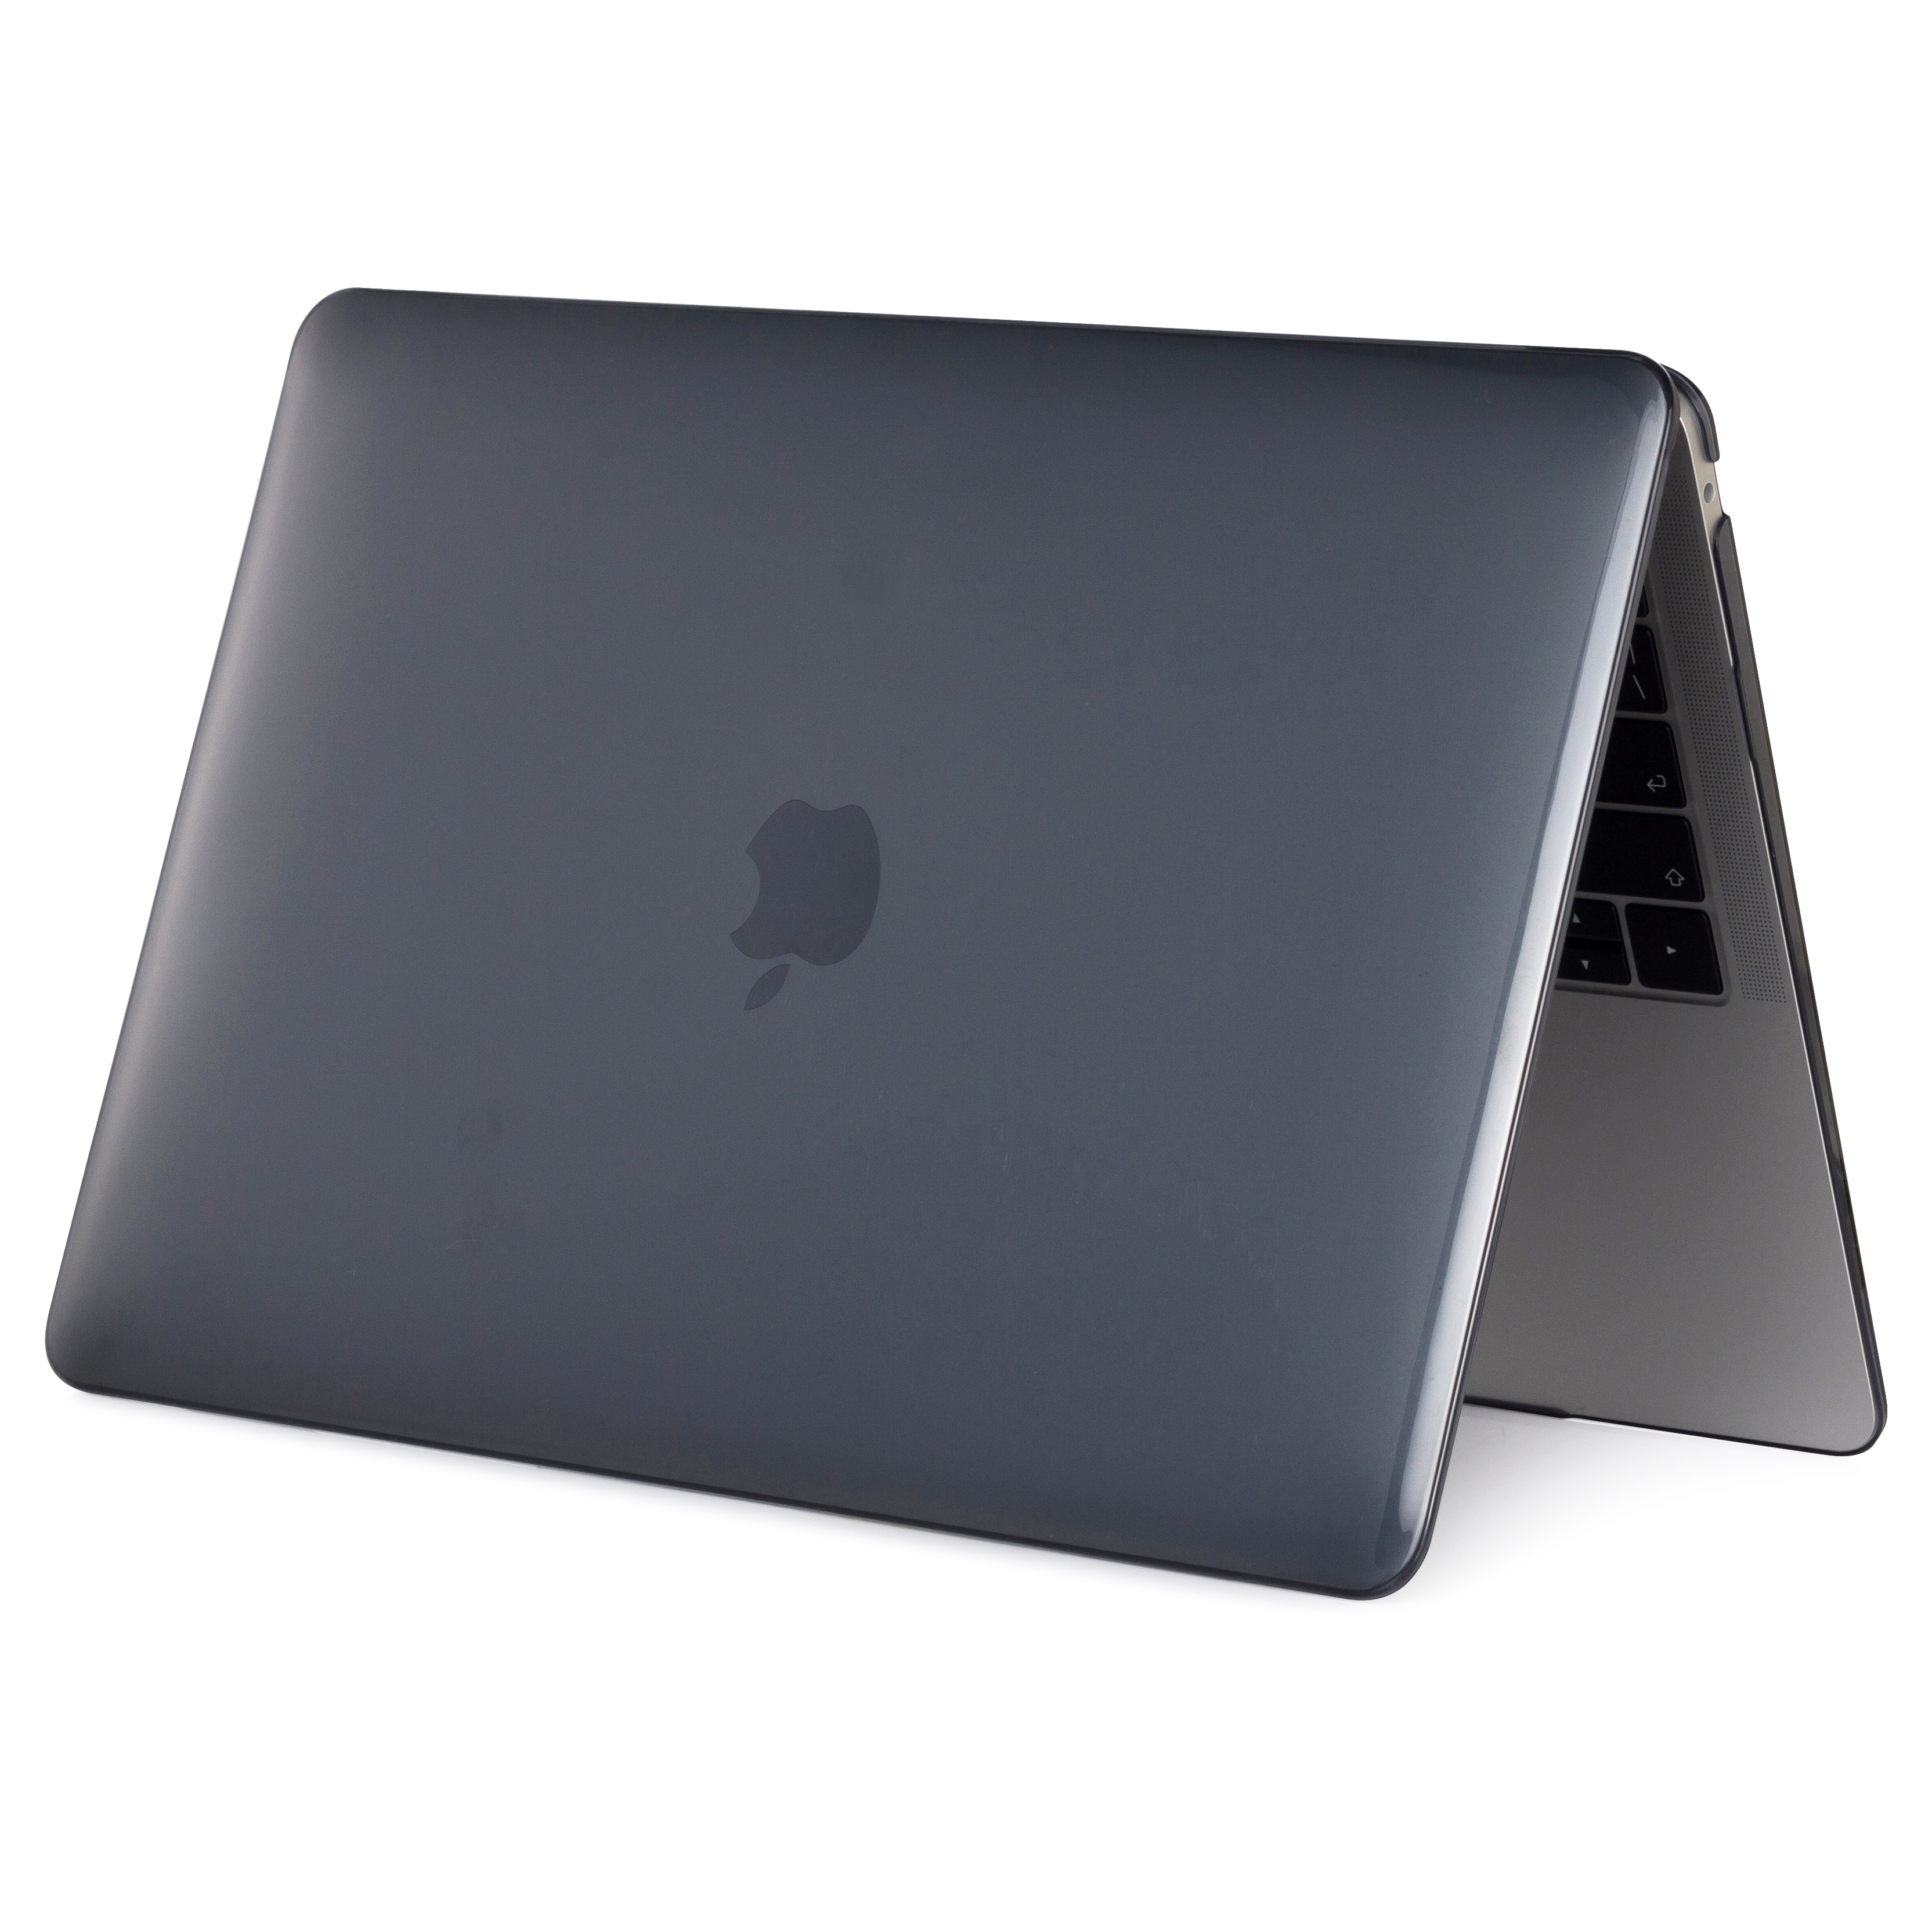 Laptop <font><b>Case</b></font> for <font><b>MacBook</b></font> Pro Laptop Sleeve for <font><b>Macbook</b></font> <font><b>Air</b></font> <font><b>13</b></font> <font><b>A1466</b></font> A1369 Retina 11 12 <font><b>13</b></font> 15.4 15 Crystal <font><b>Transparent</b></font> Cover image